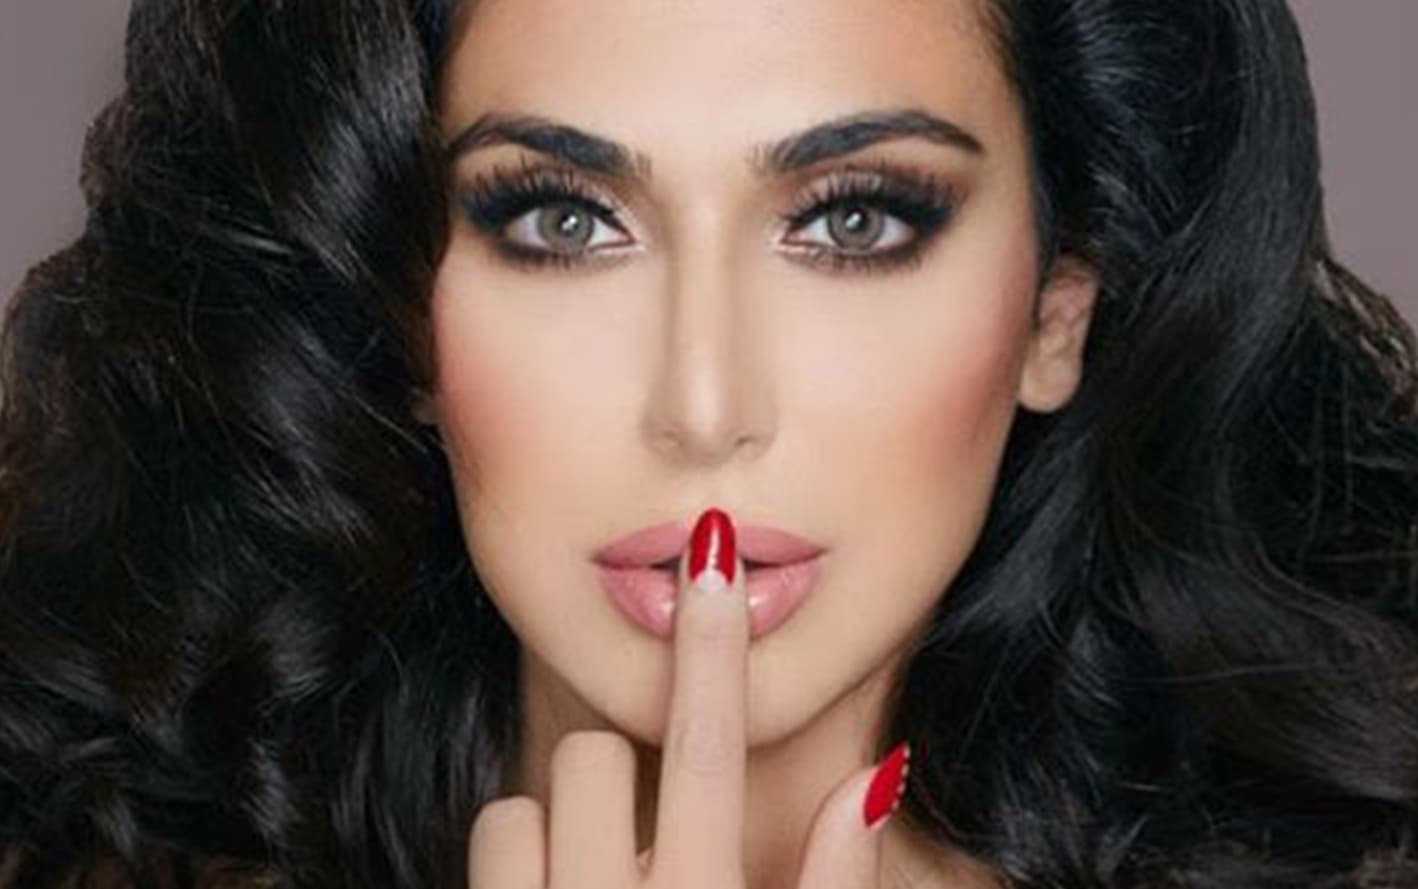 Arab Plastic Surgery Before And After photo - 1